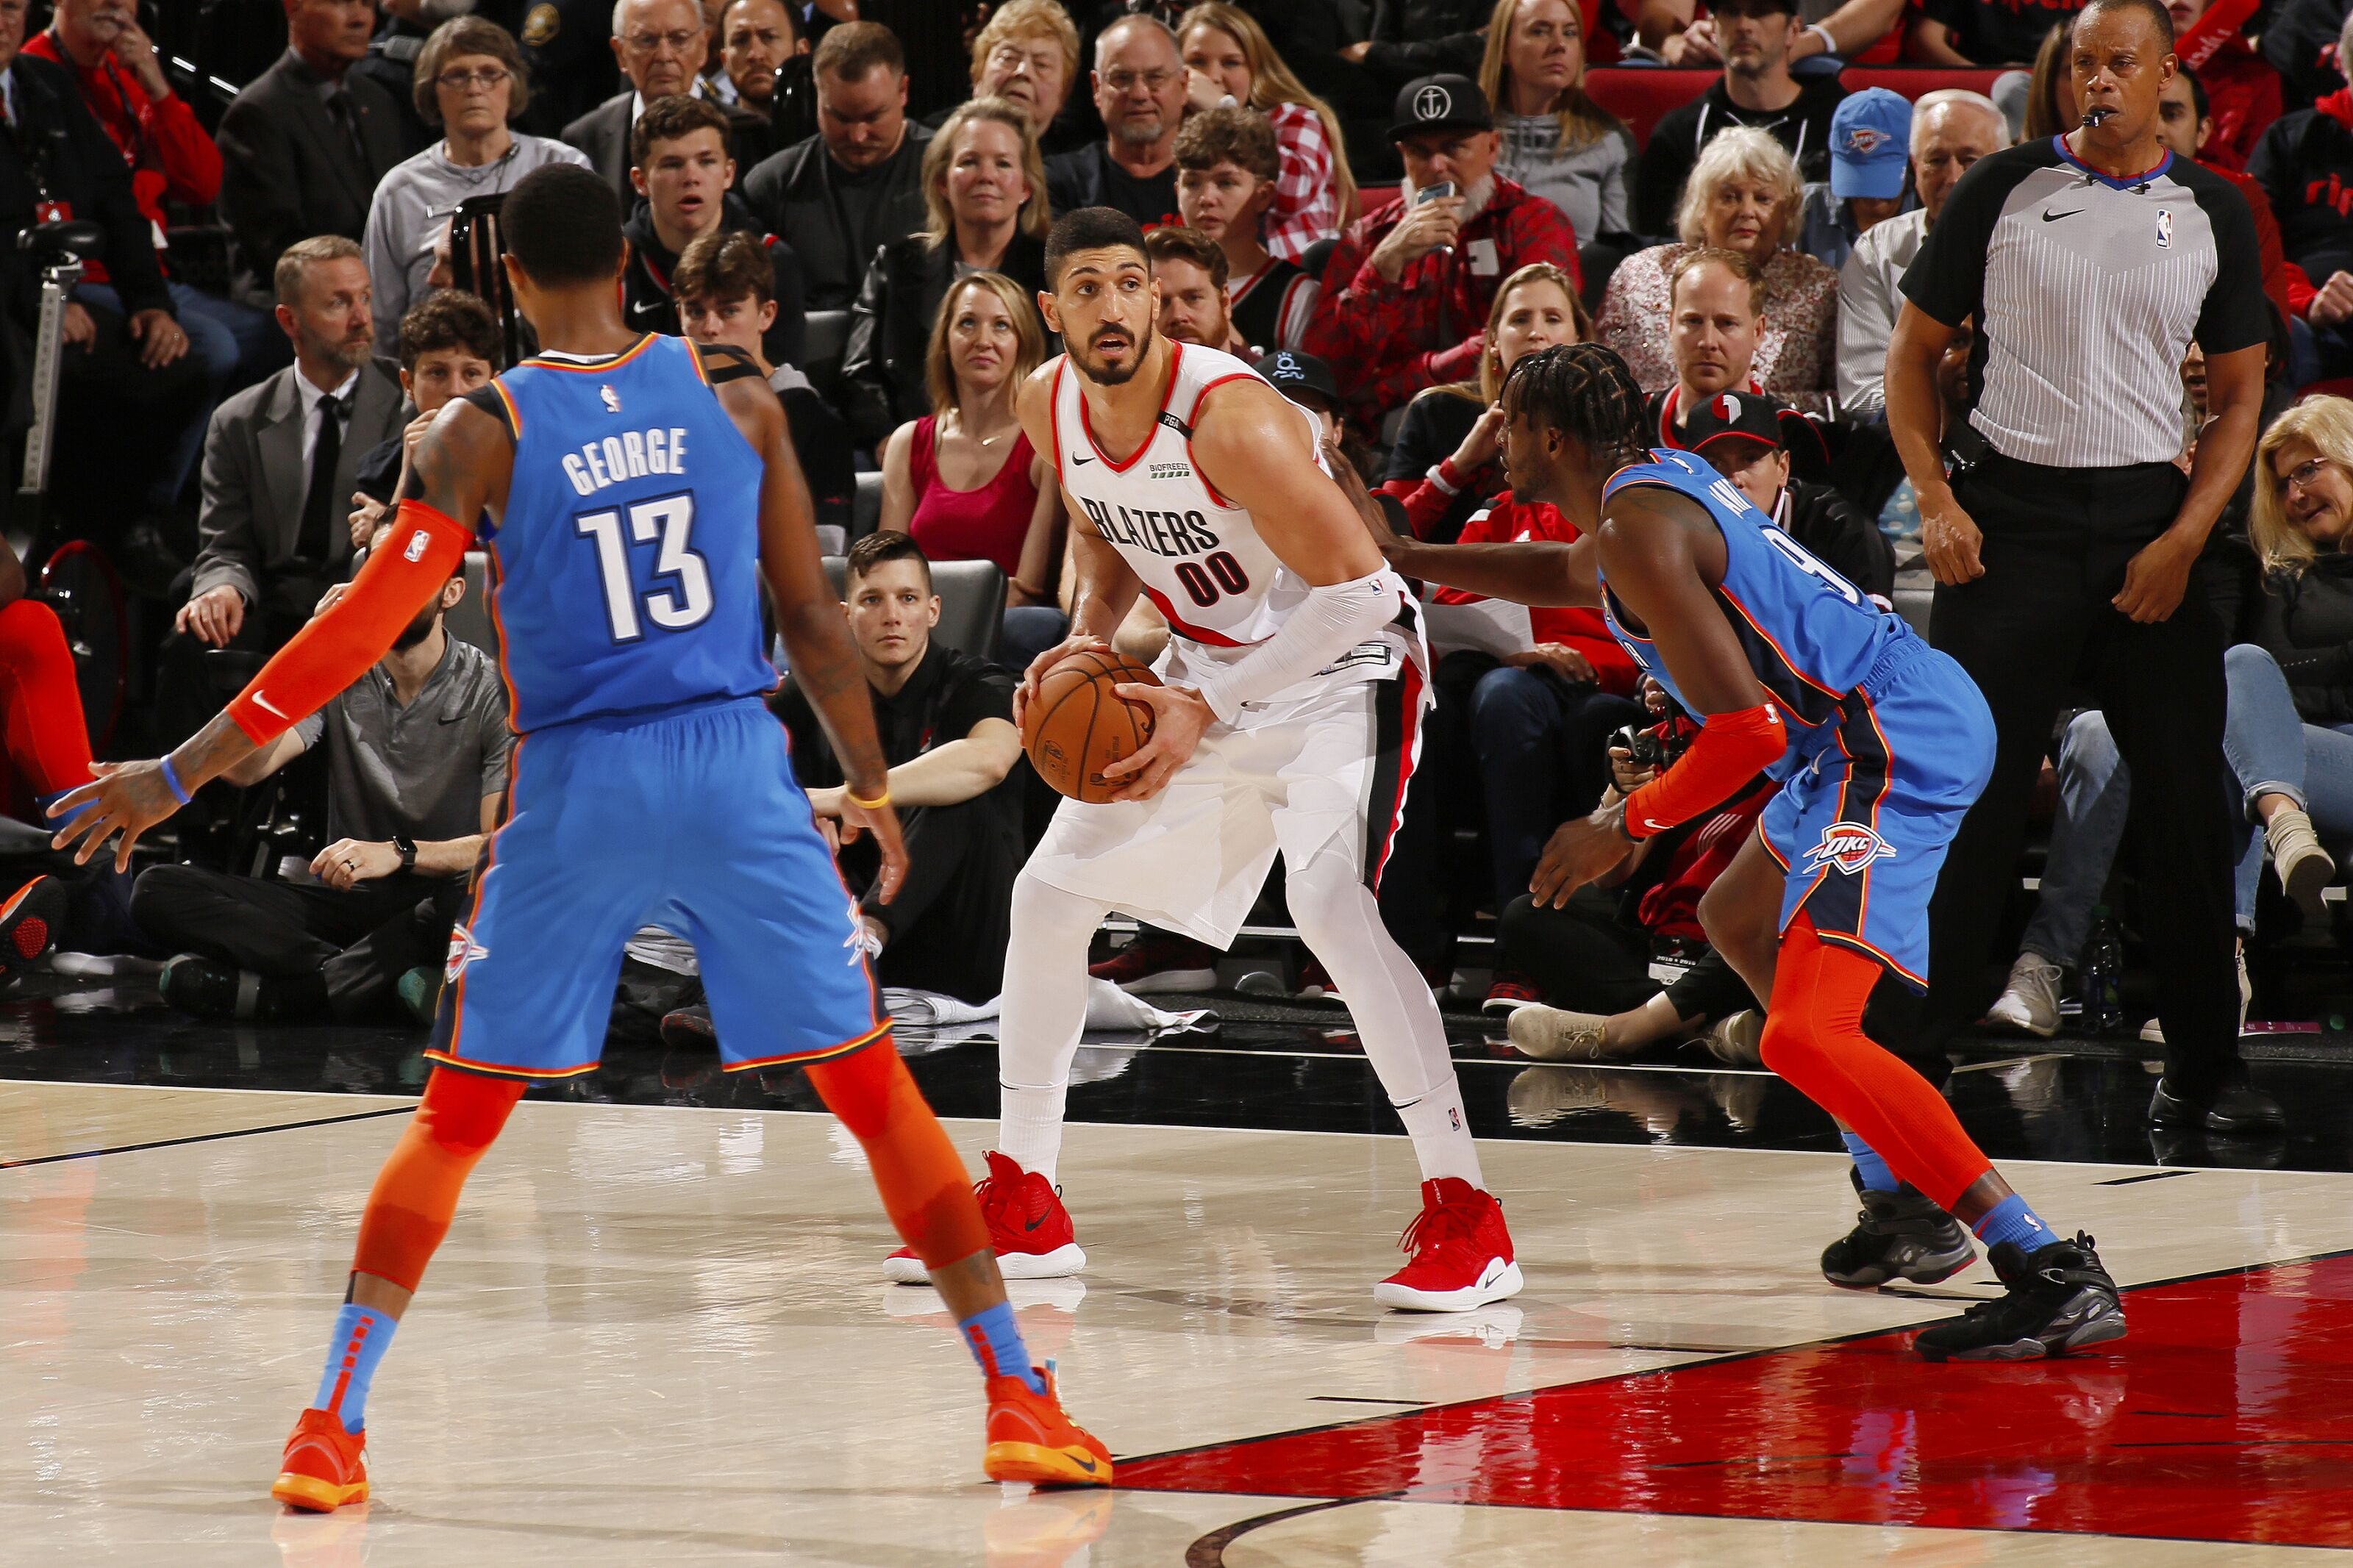 7d994eee4bb In Game 1, the OKC Thunder shot the three at a historically low mark.  Shifting to Game 2, the team aims to even the series in Rip City.